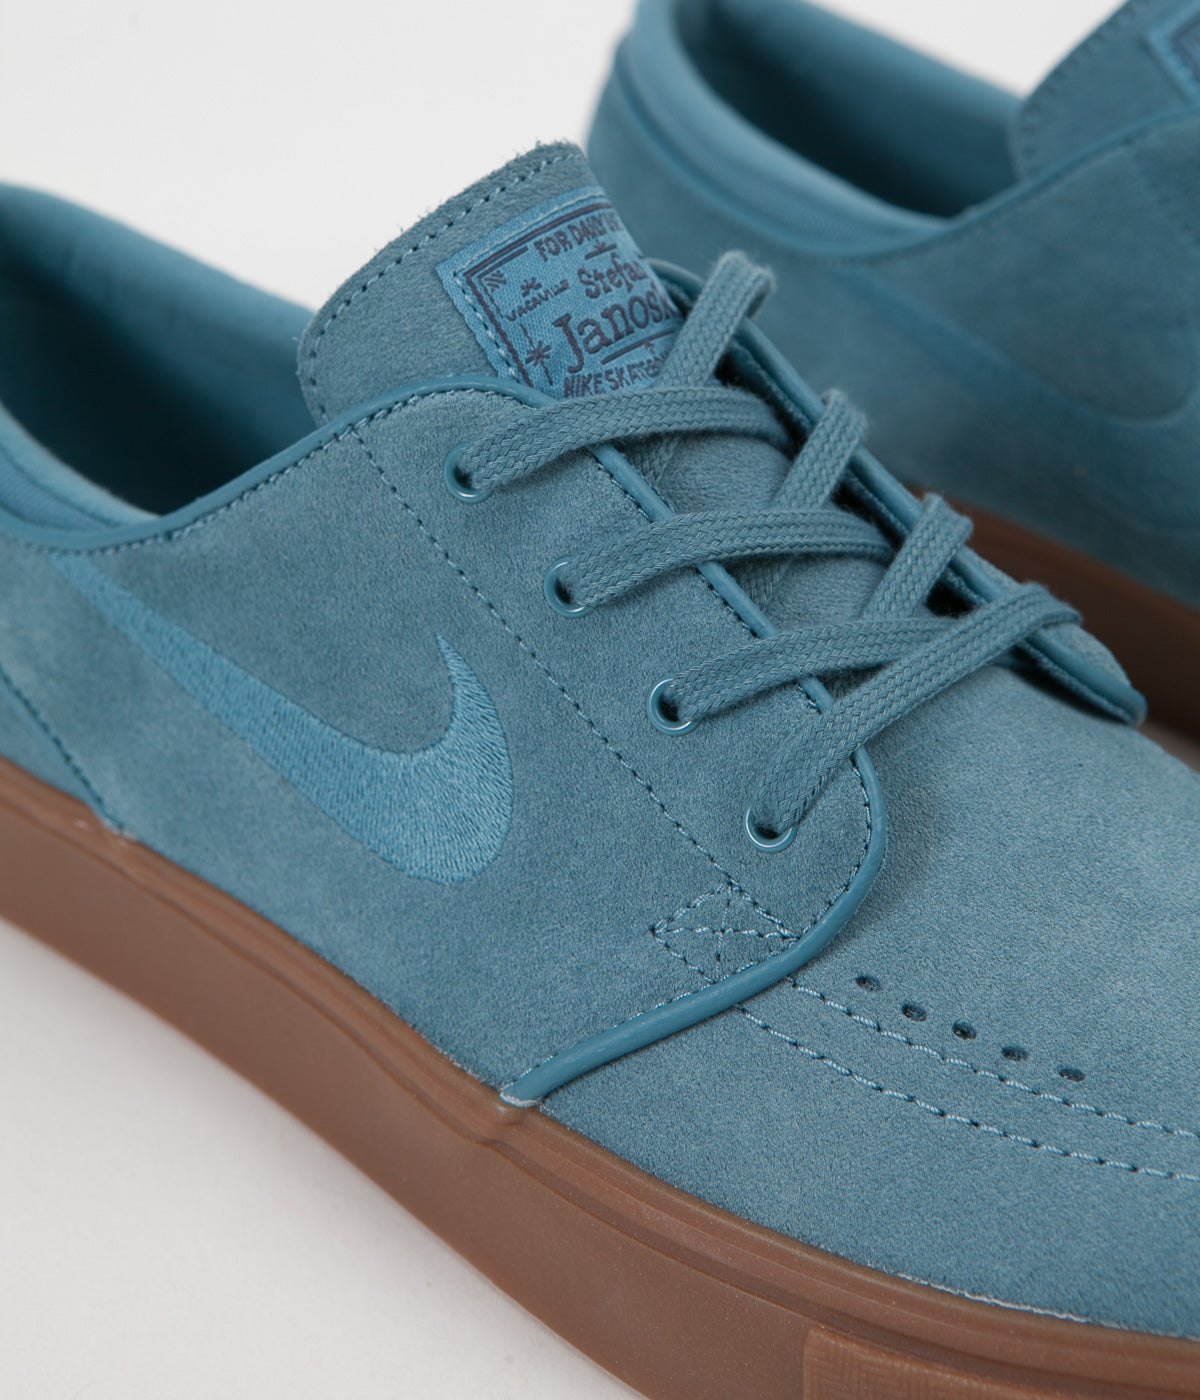 ... Nike SB Stefan Janoski Shoes - Noise Aqua   Noise Aqua - Thunder Blue  ... 68570d1be